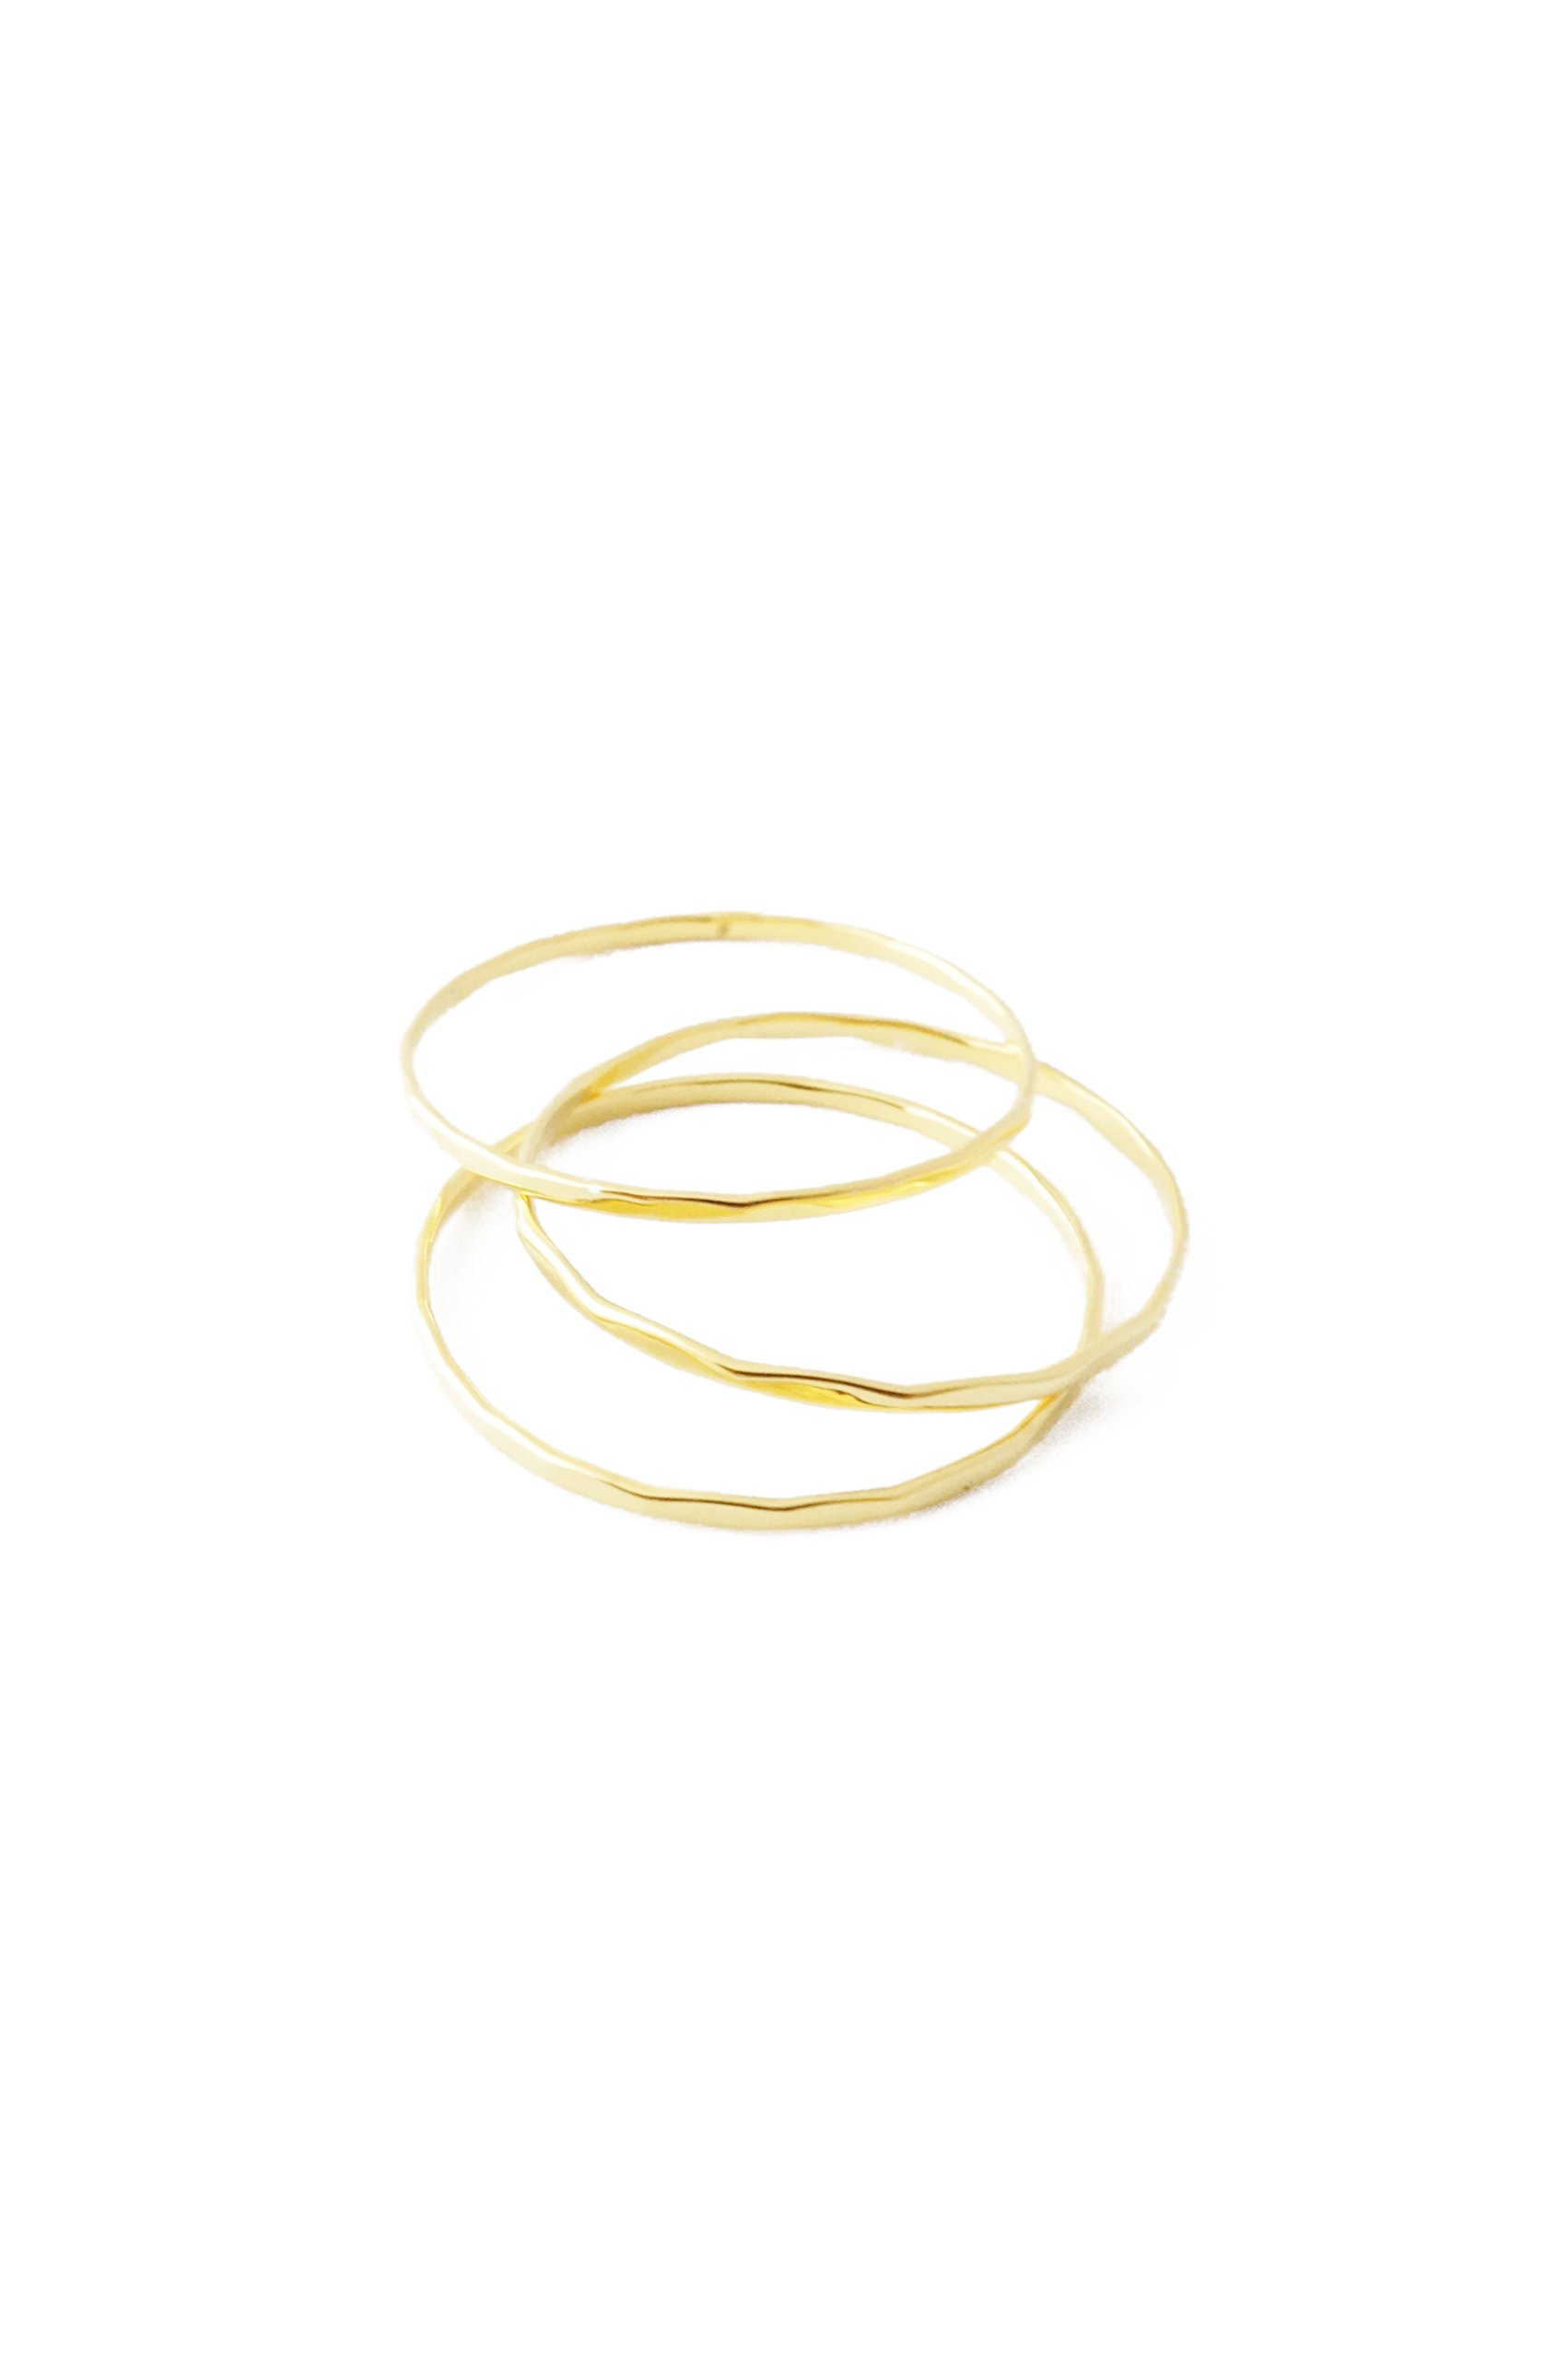 HONEYCAT Super Skinny Hammered Stacking Rings Trio Set in Gold, Rose Gold, or Silver | Minimalist, Delicate Jewelry (Hammered/G/8) by HONEYCAT